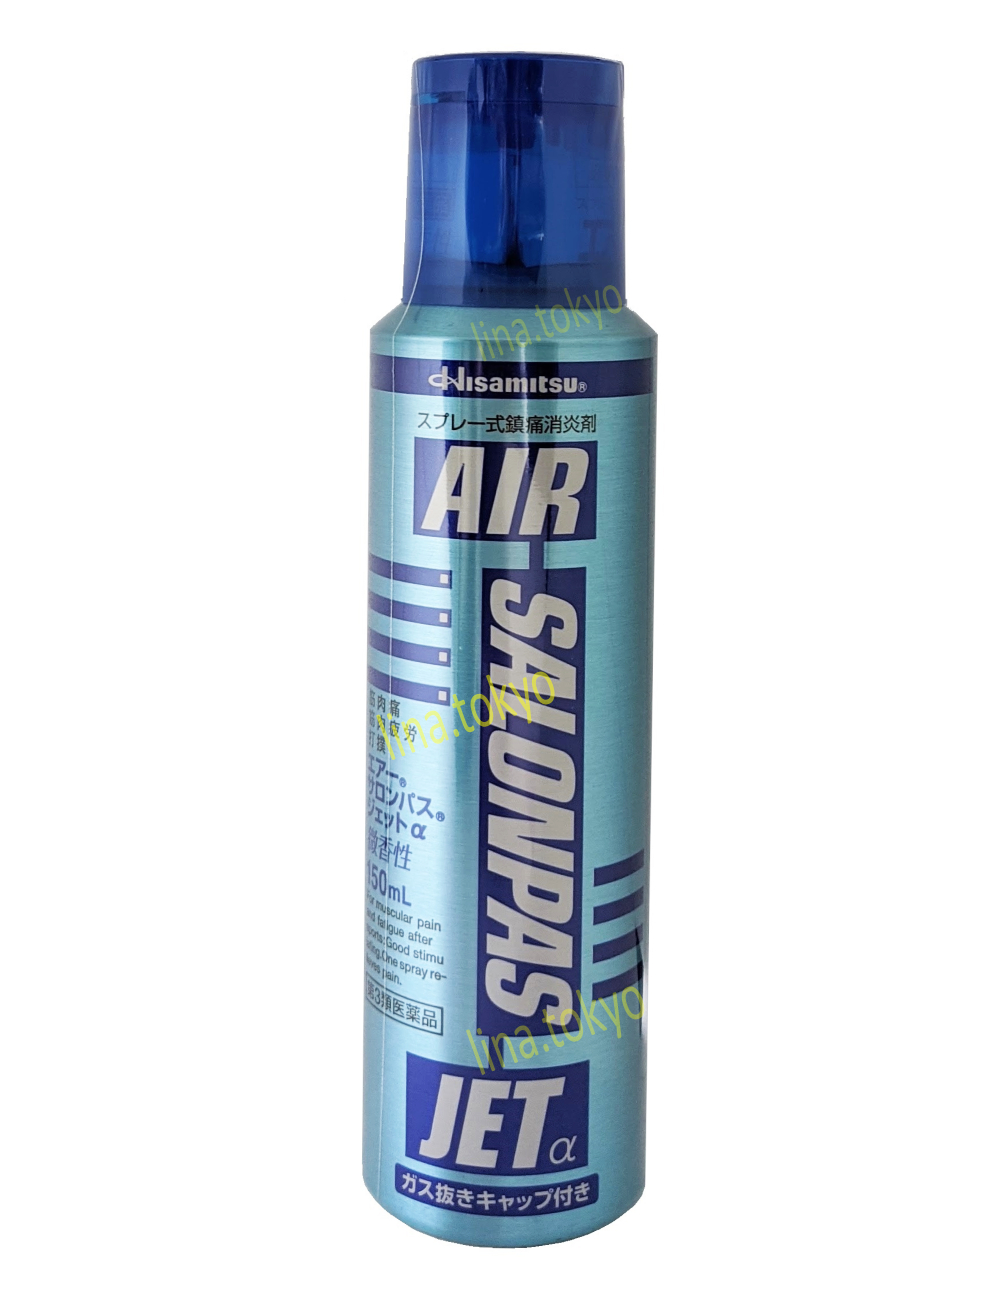 N30114- Air salonpas jet 150ml